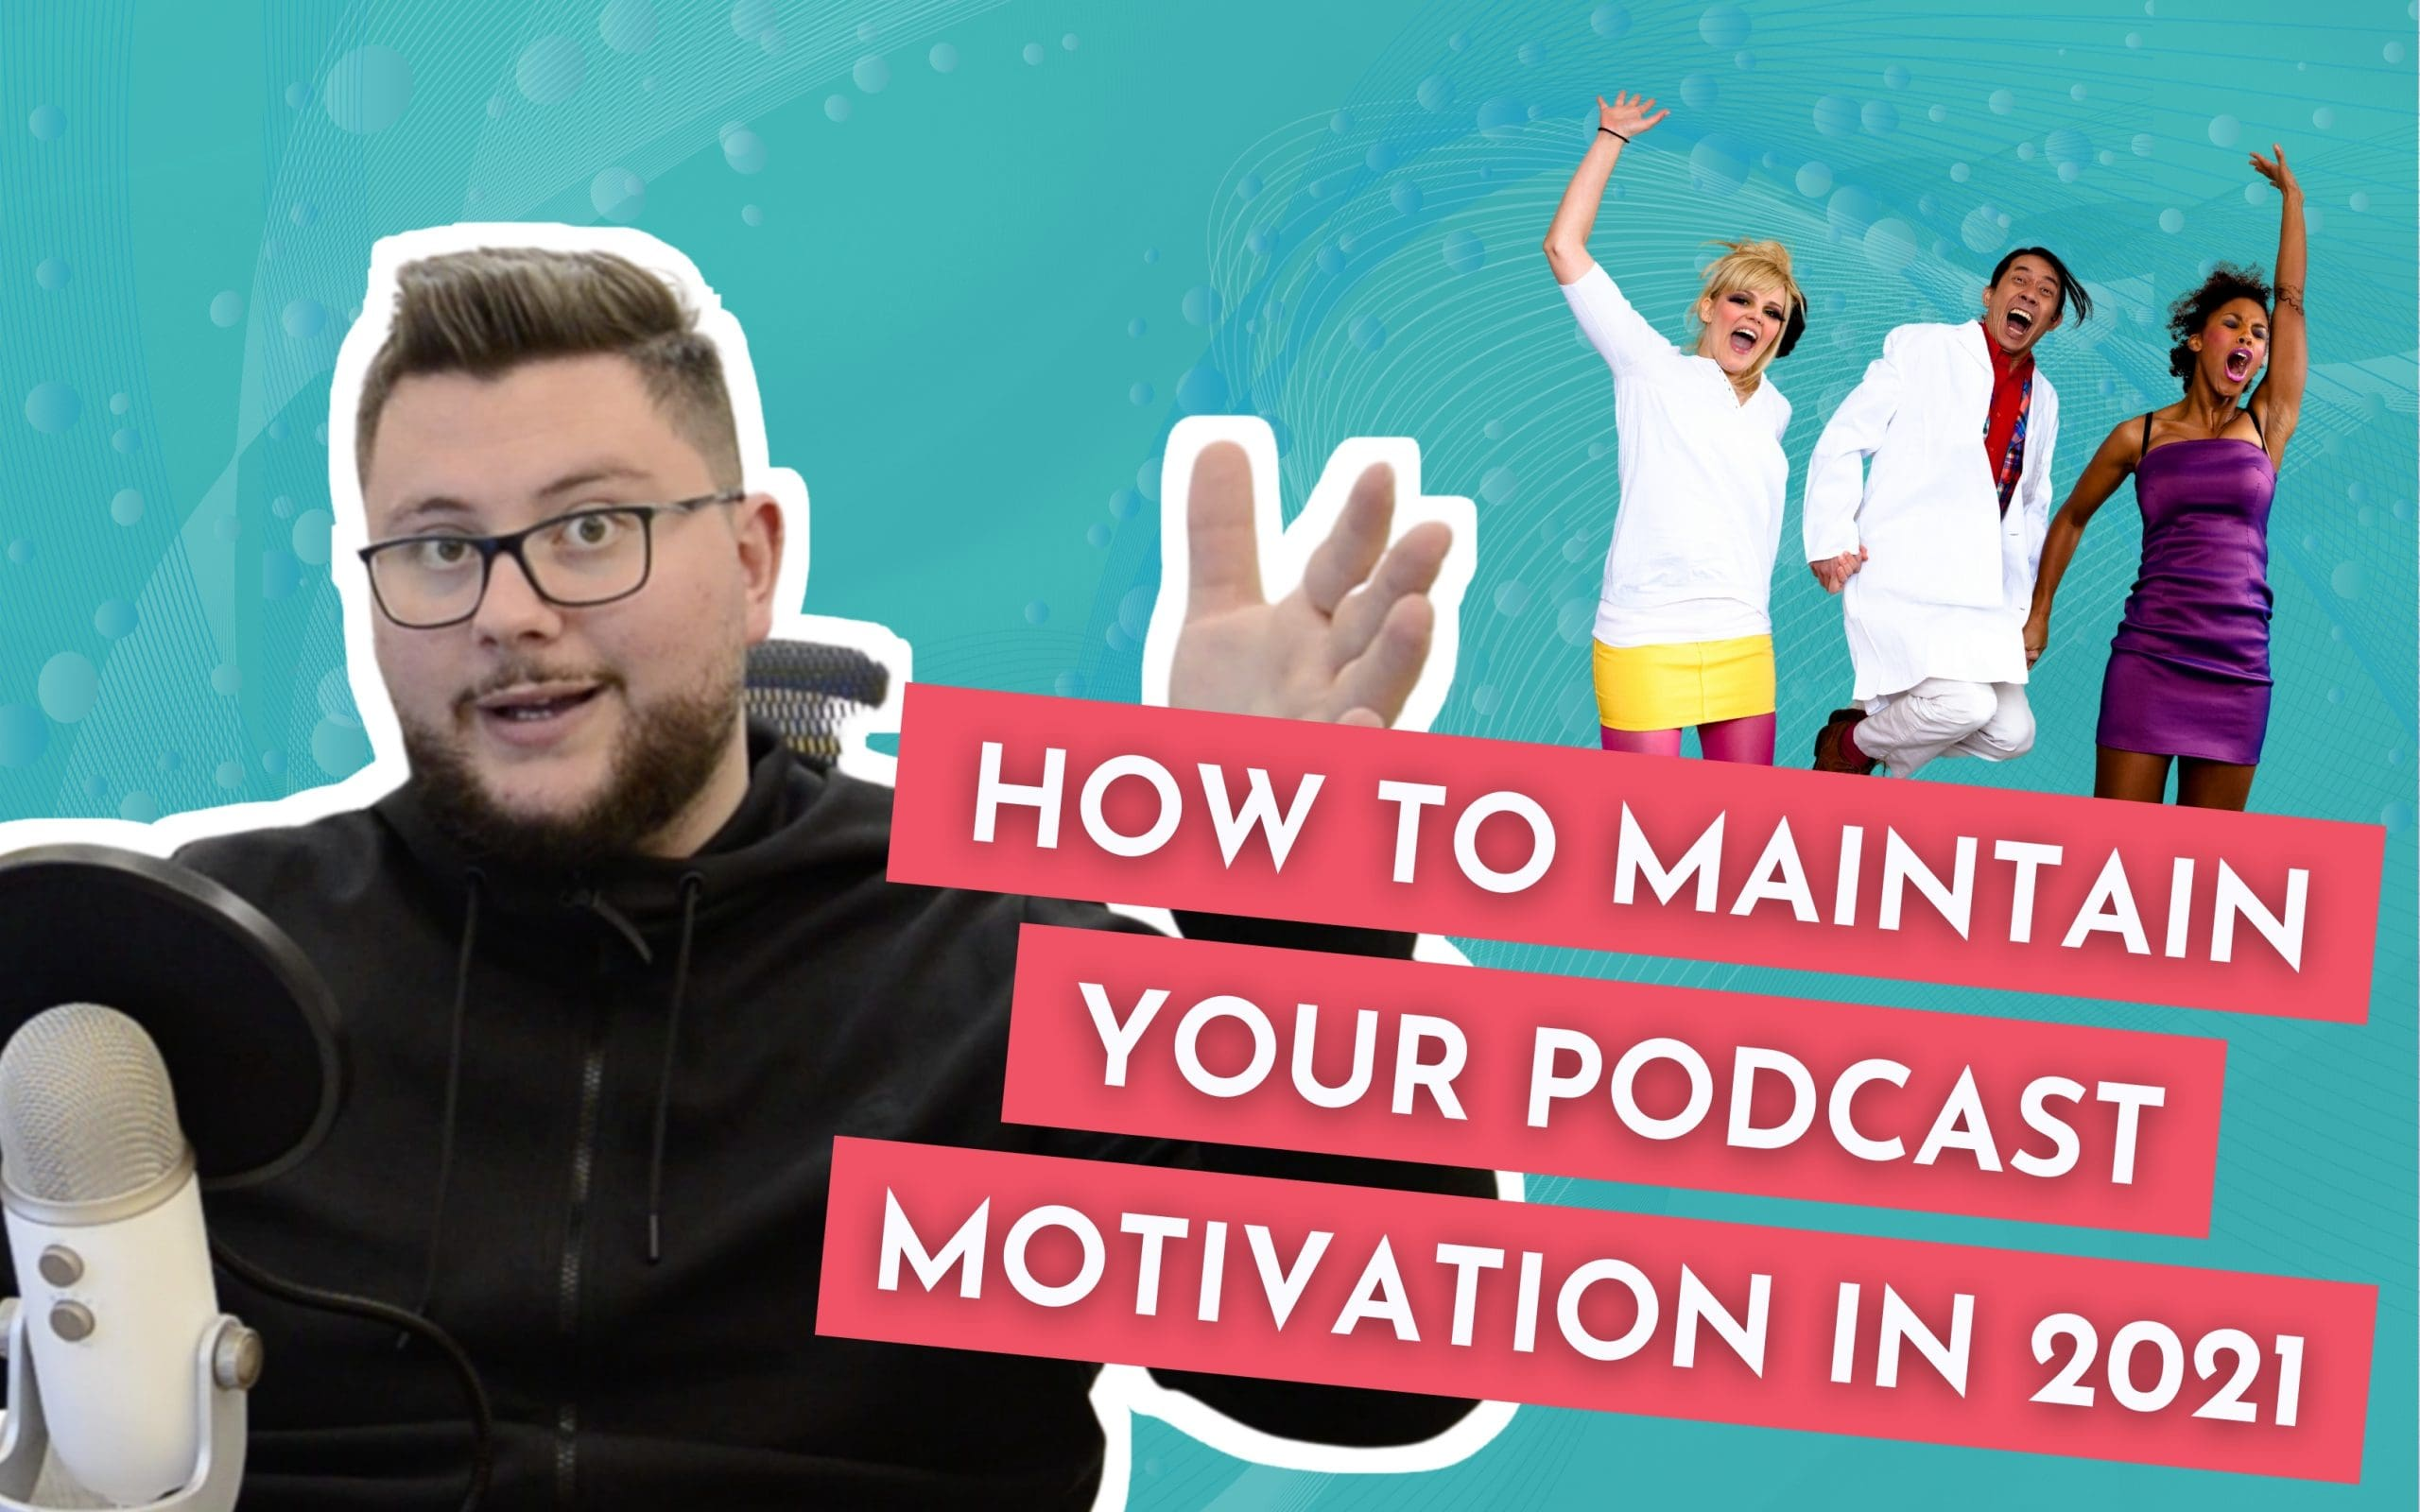 How to Maintain Your Podcast Motivation in 2021